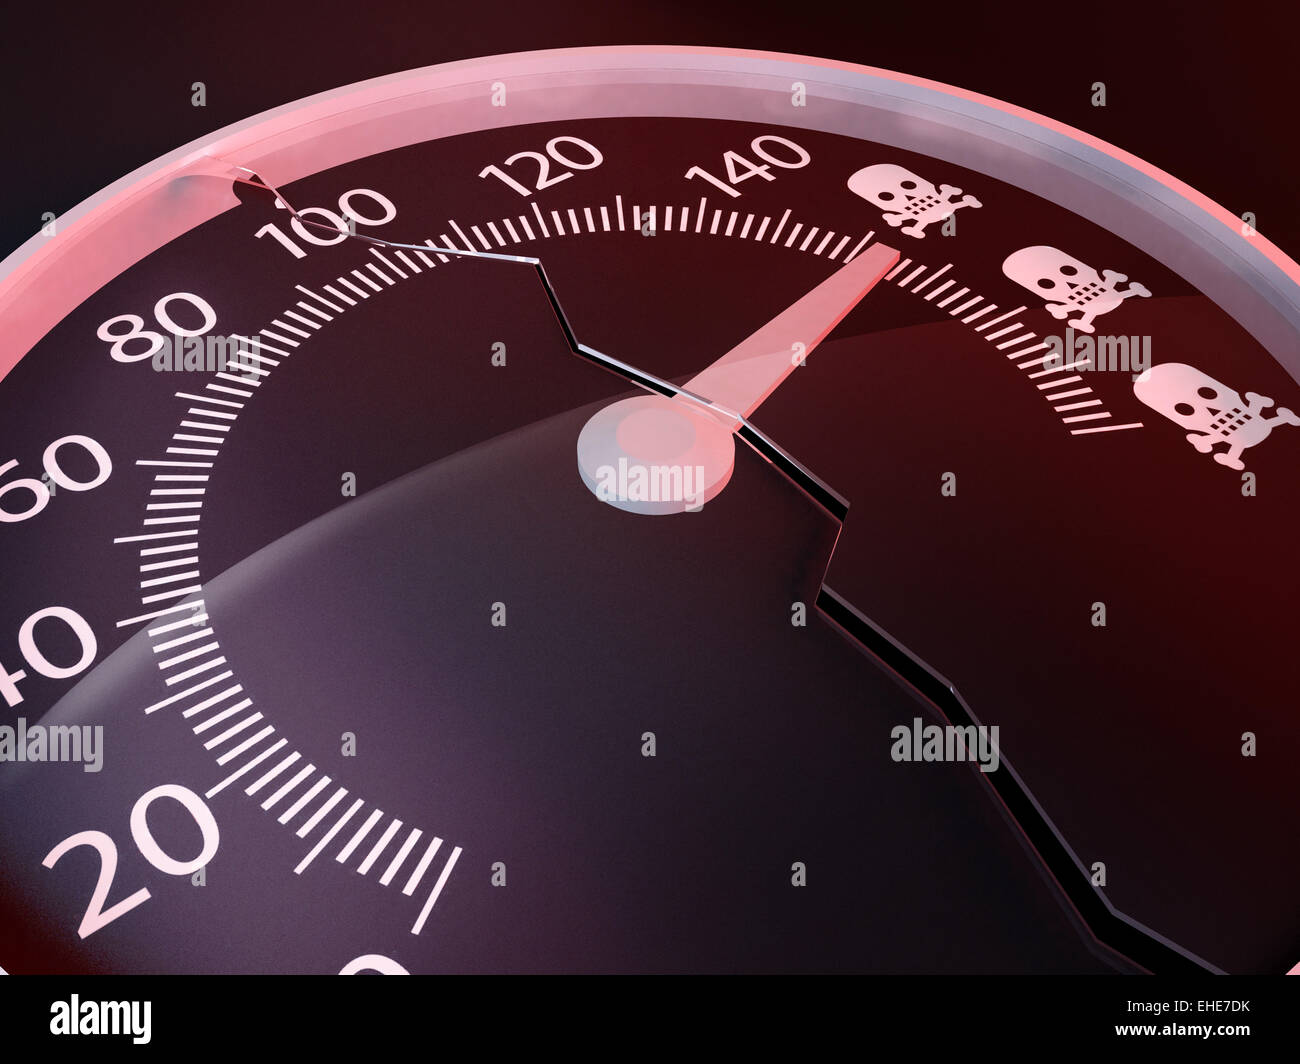 Exceed the speed limits kills - Stock Image